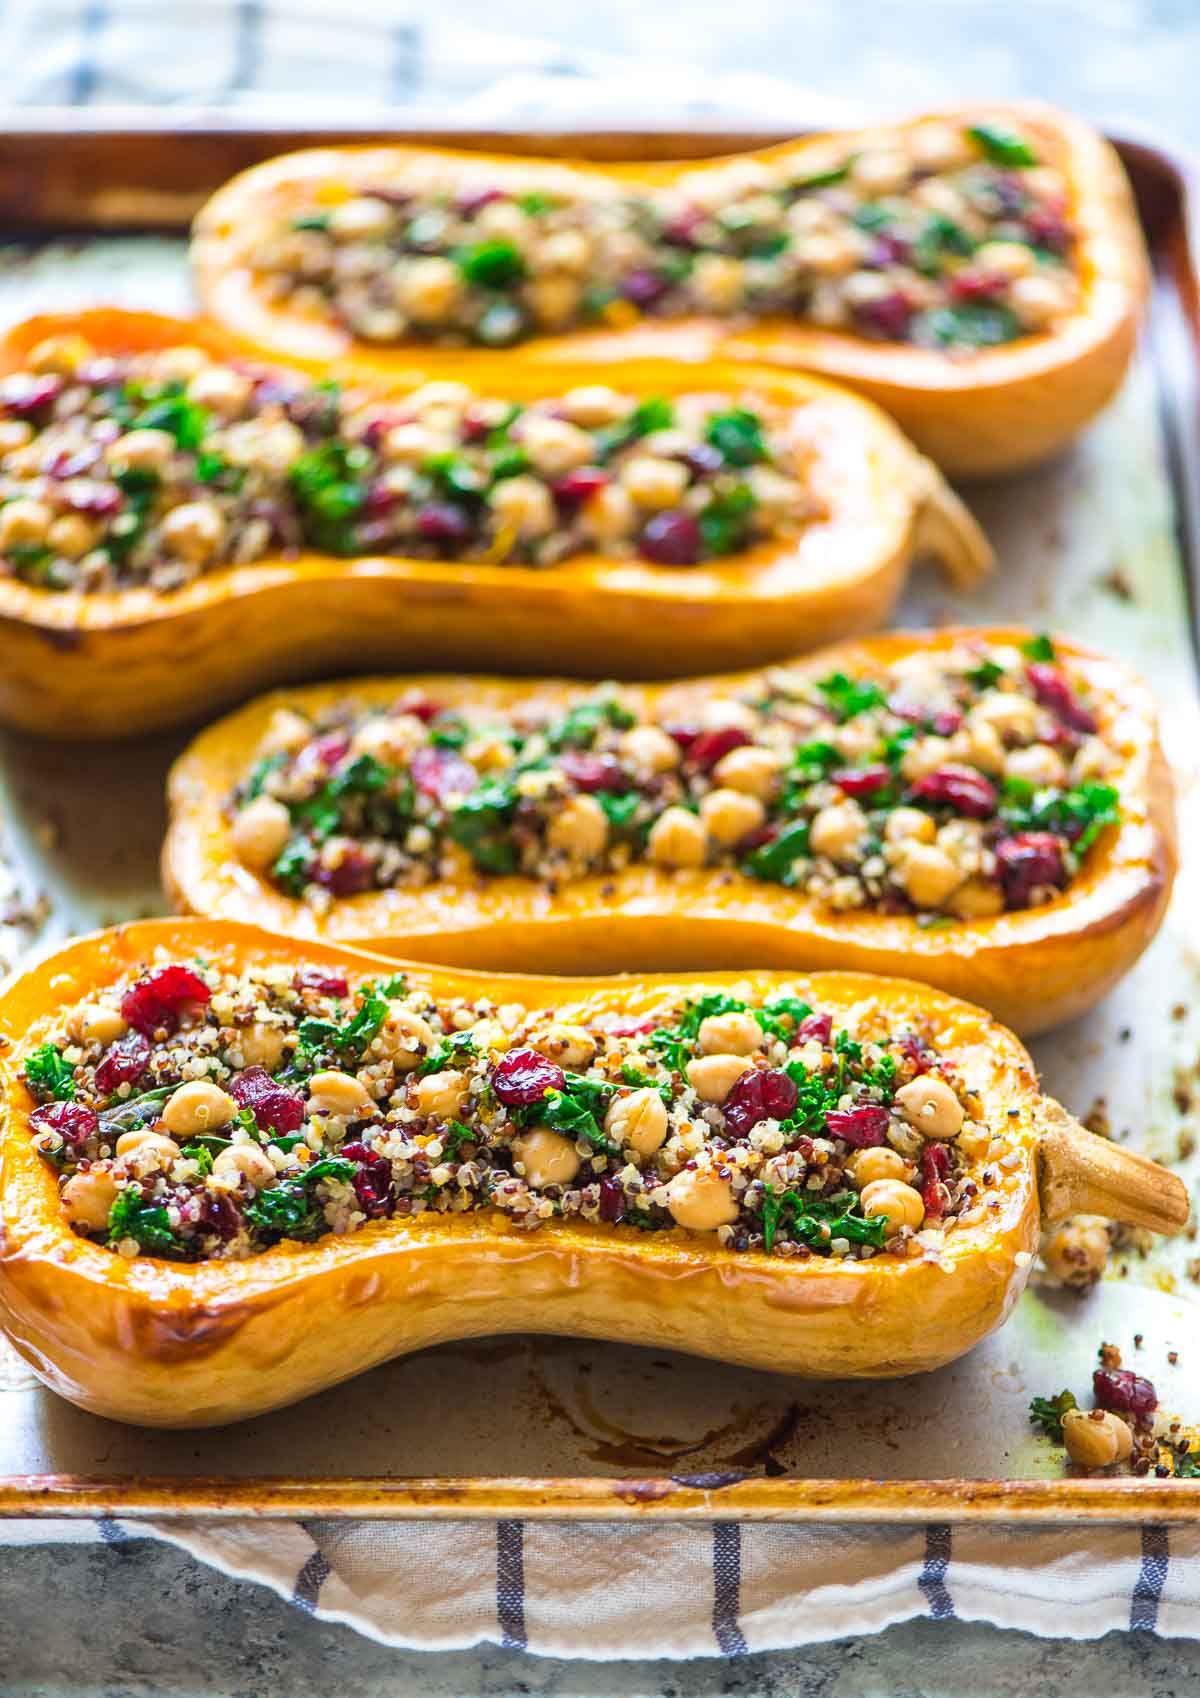 Quinoa Stuffed Butternut Squash With Cranberries And Kale